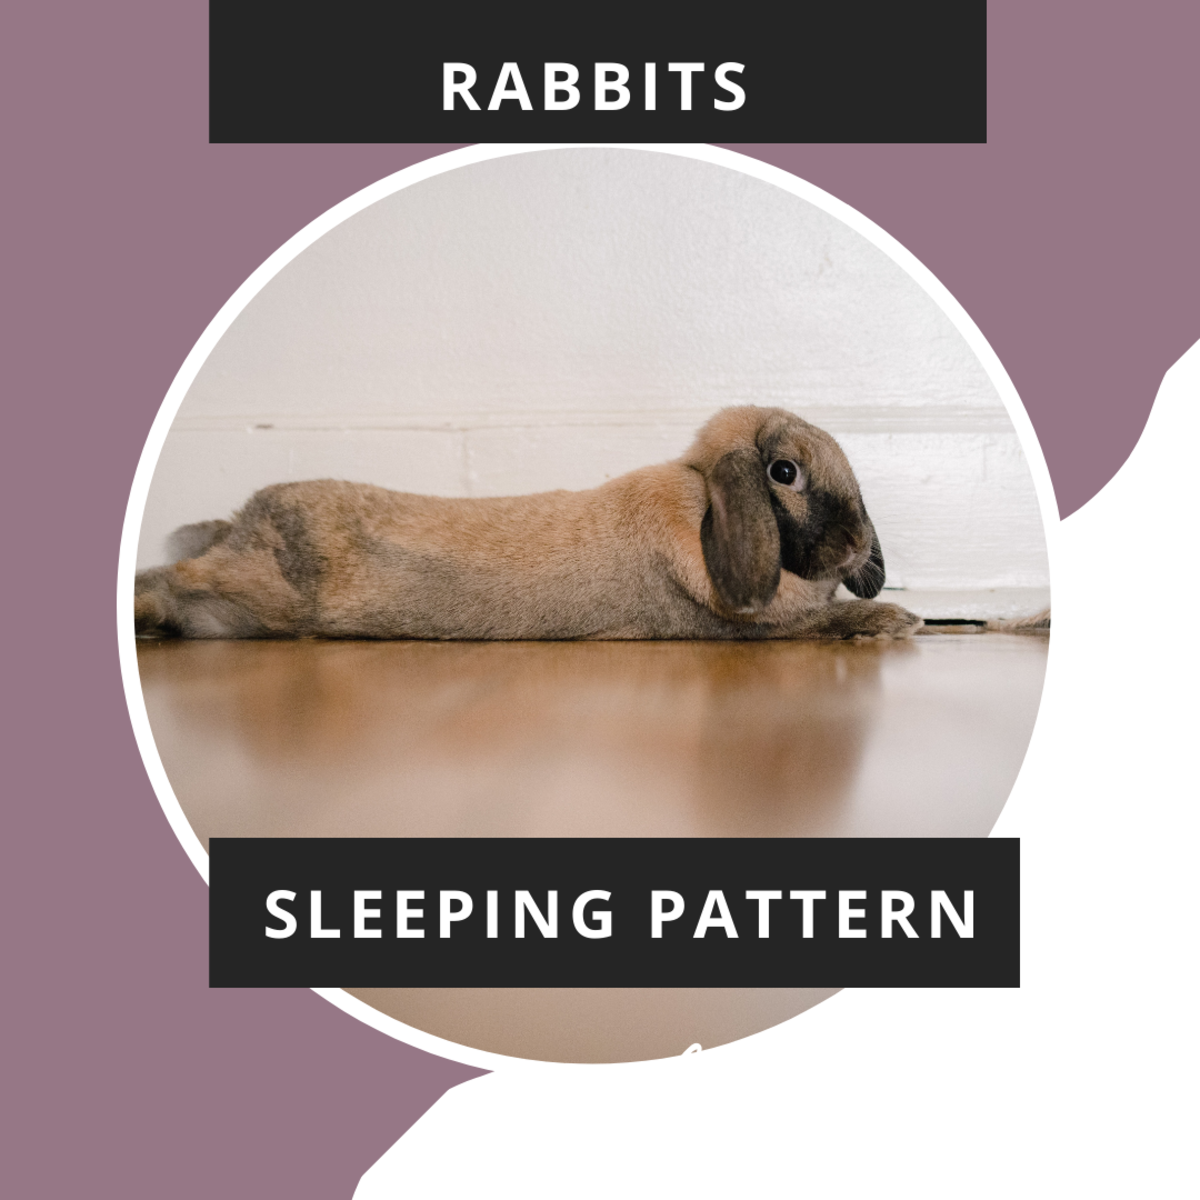 Why Rabbits Grind Their Teeth and Breathe Heavily During Sleep